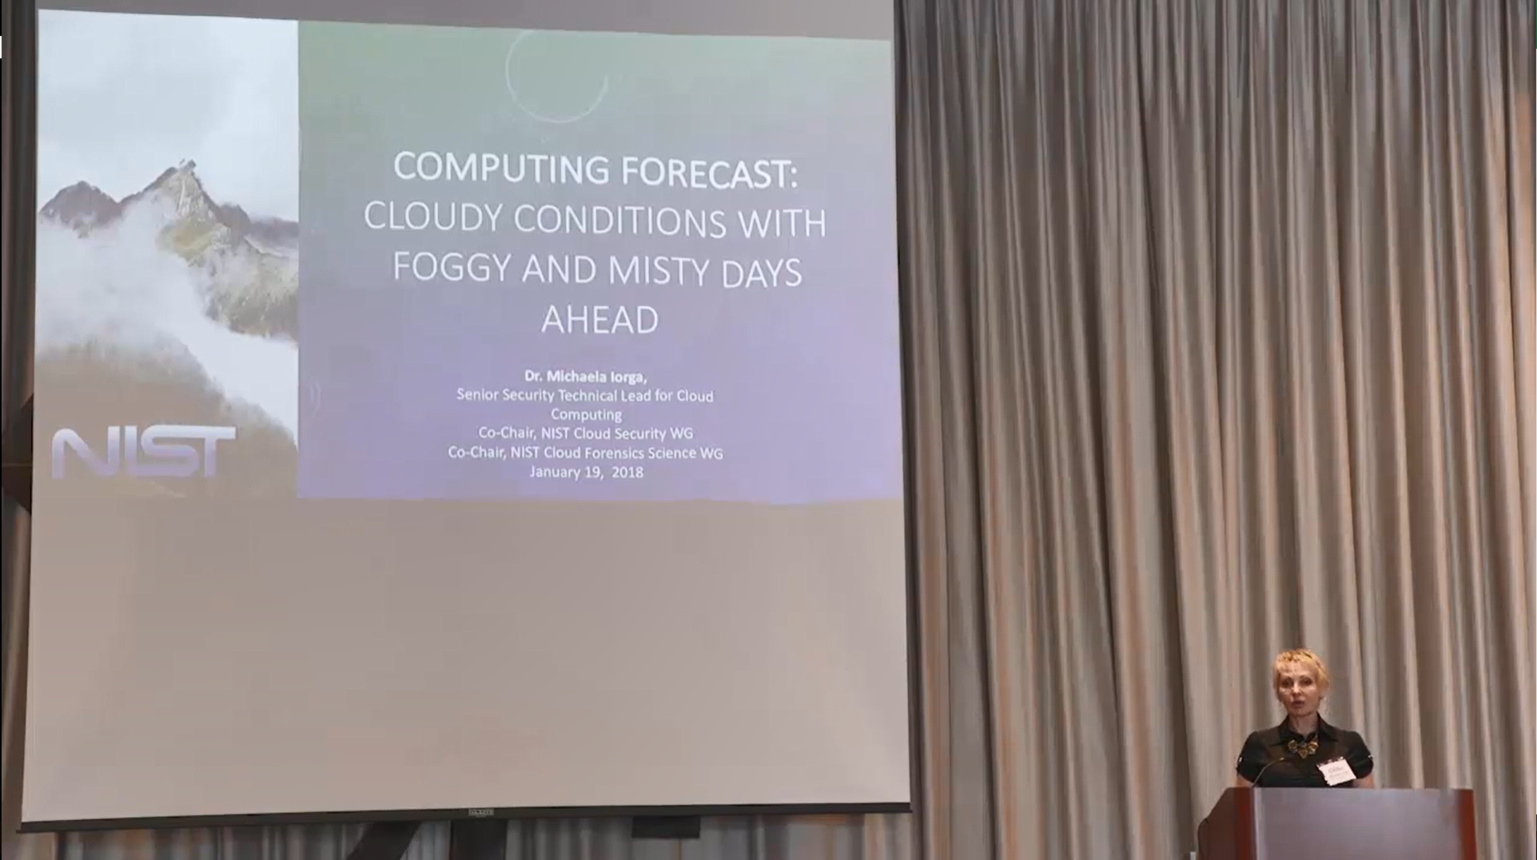 Computing Forecast: Cloudy Conditions with Foggy and Misty Days Ahead